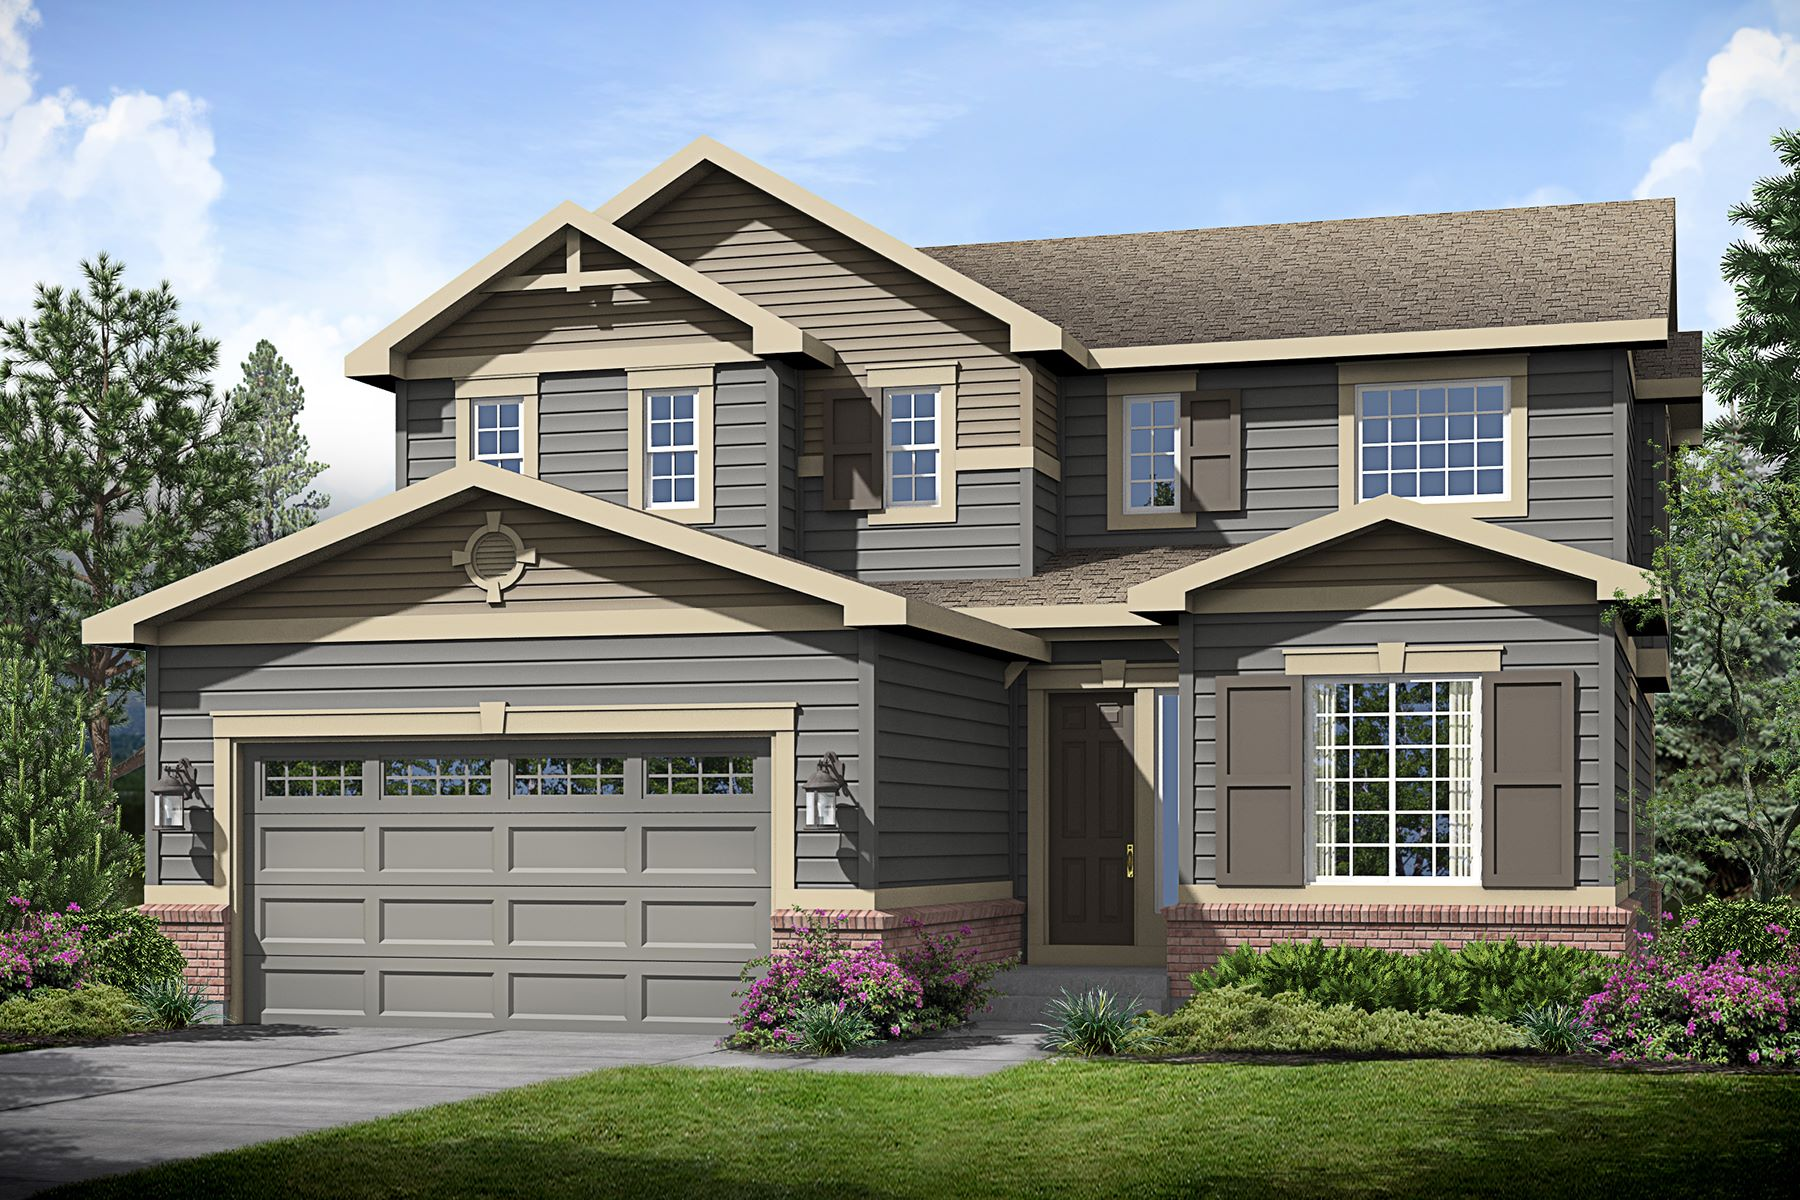 Single Family Home for Sale at Brand new home in Beacon Point 6671 S Newbern St Aurora, Colorado, 80016 United States